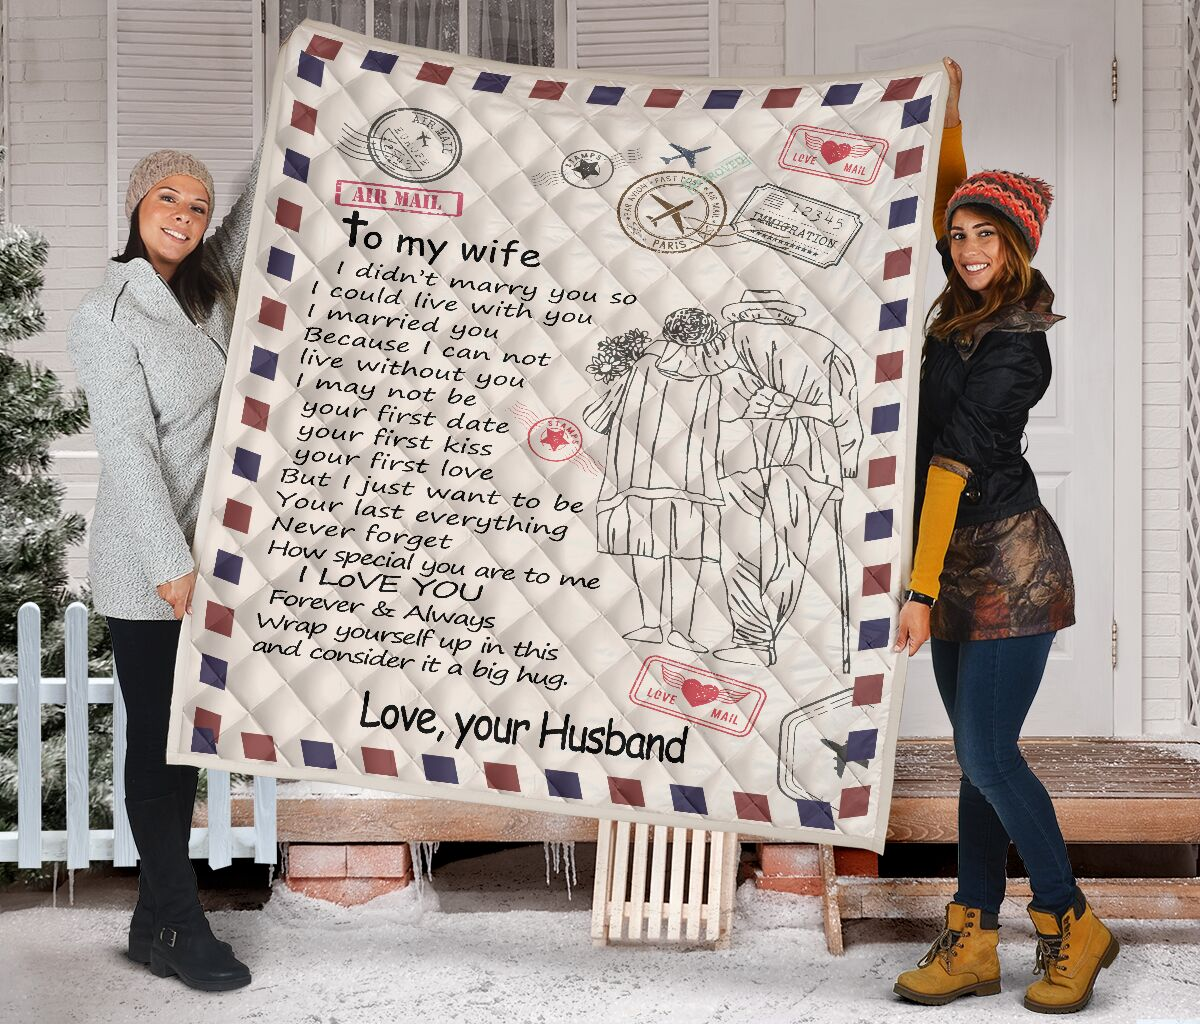 Letter air mail to my wife i didn't marry you quilt blanket